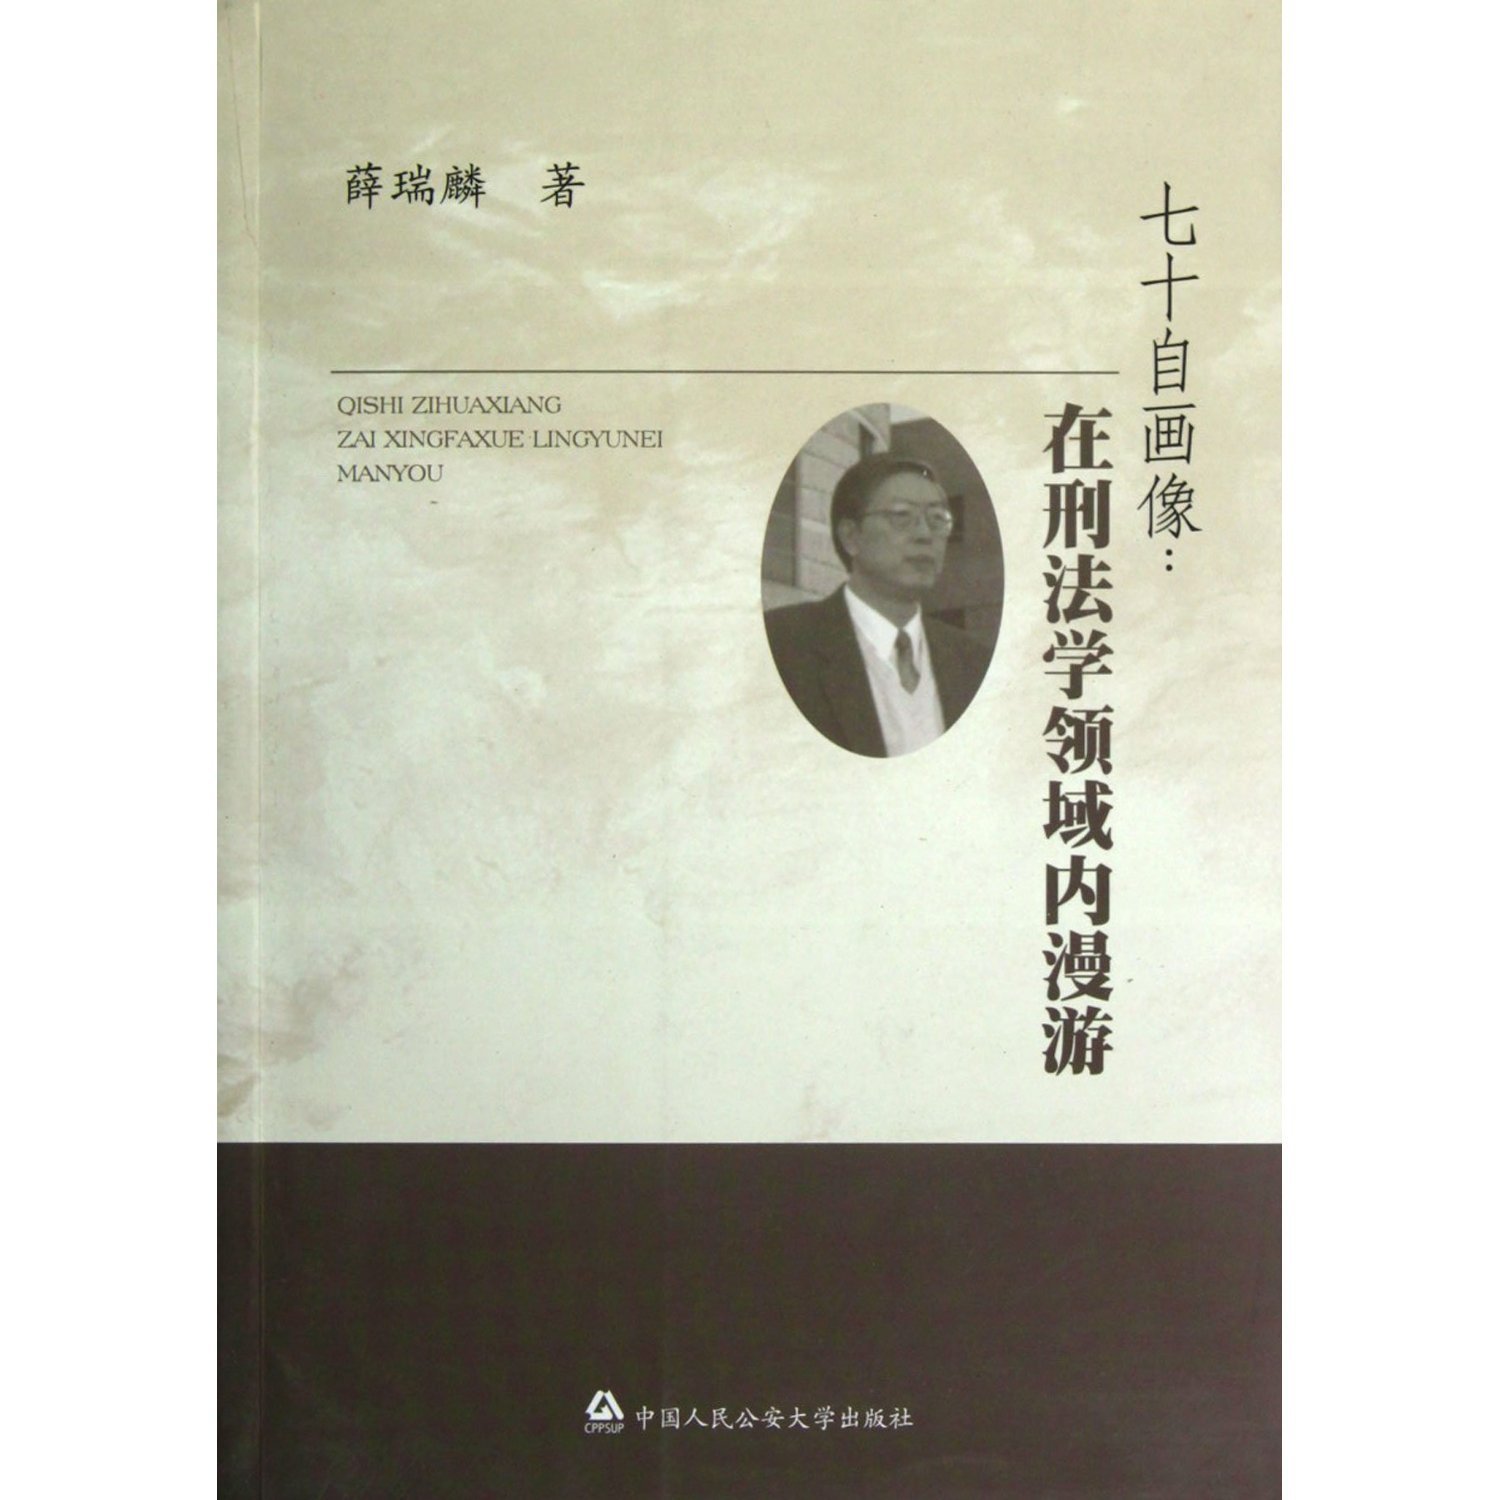 Self-portrait at 70-Wandering in Criminal Law (Chinese Edition) PDF